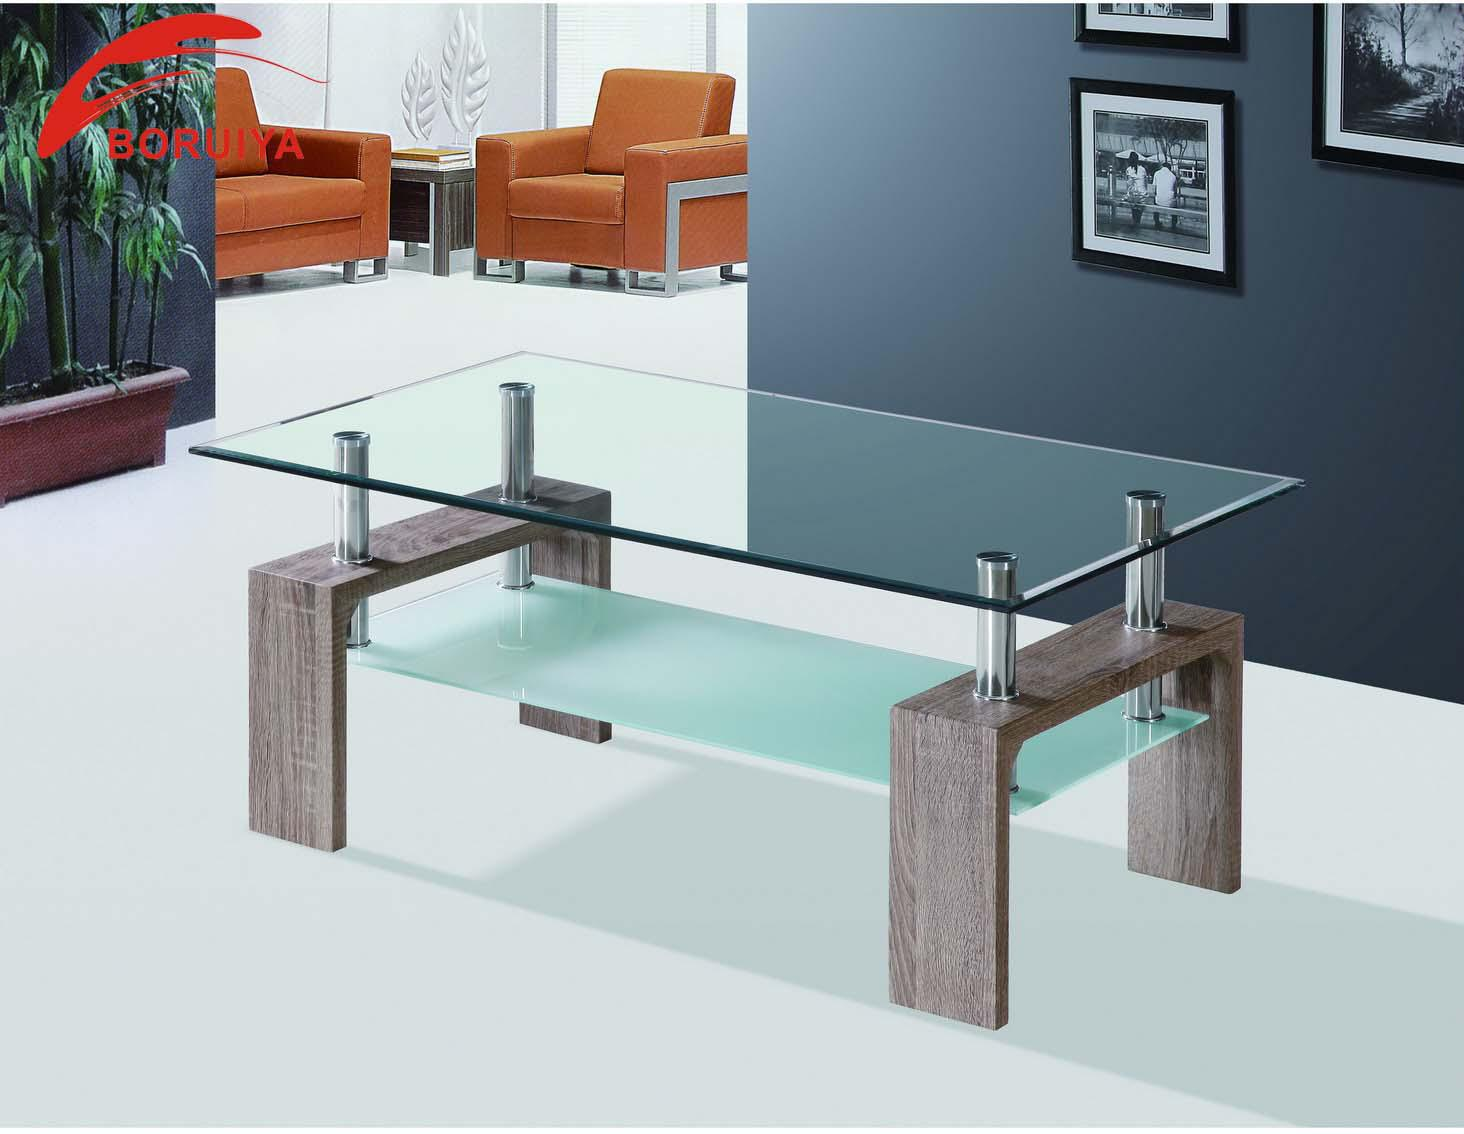 Living room furniture center table design coffee table for Material design table